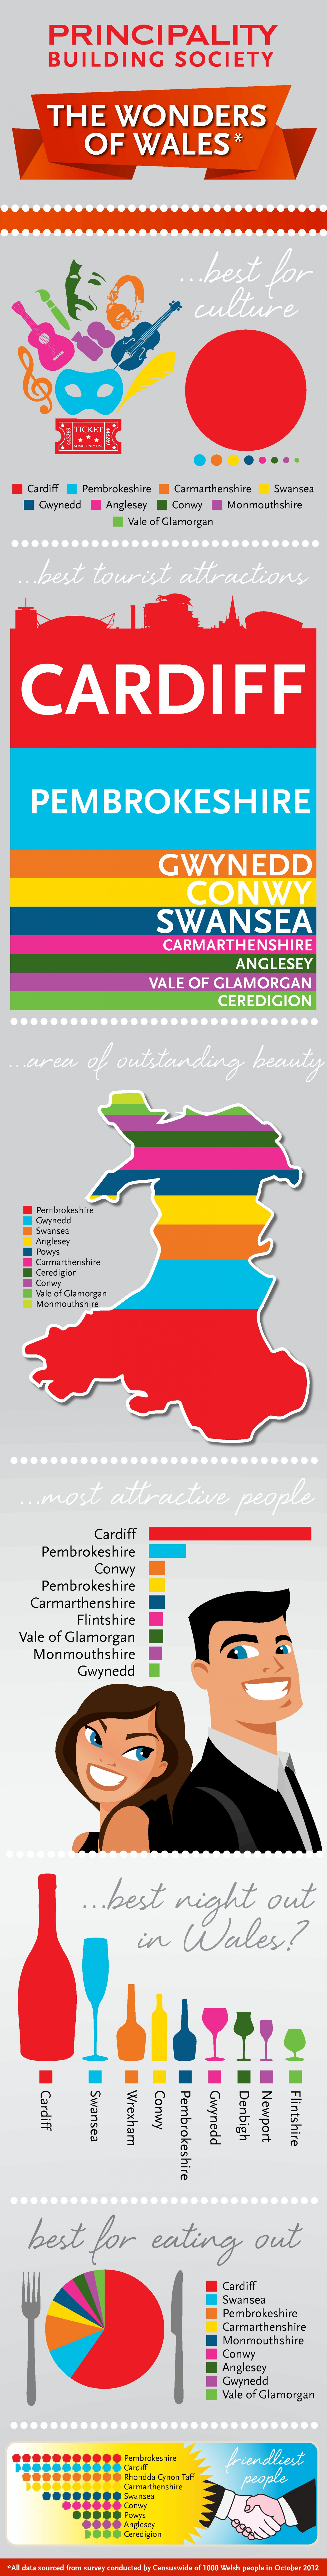 The Wonders of Wales Infographic